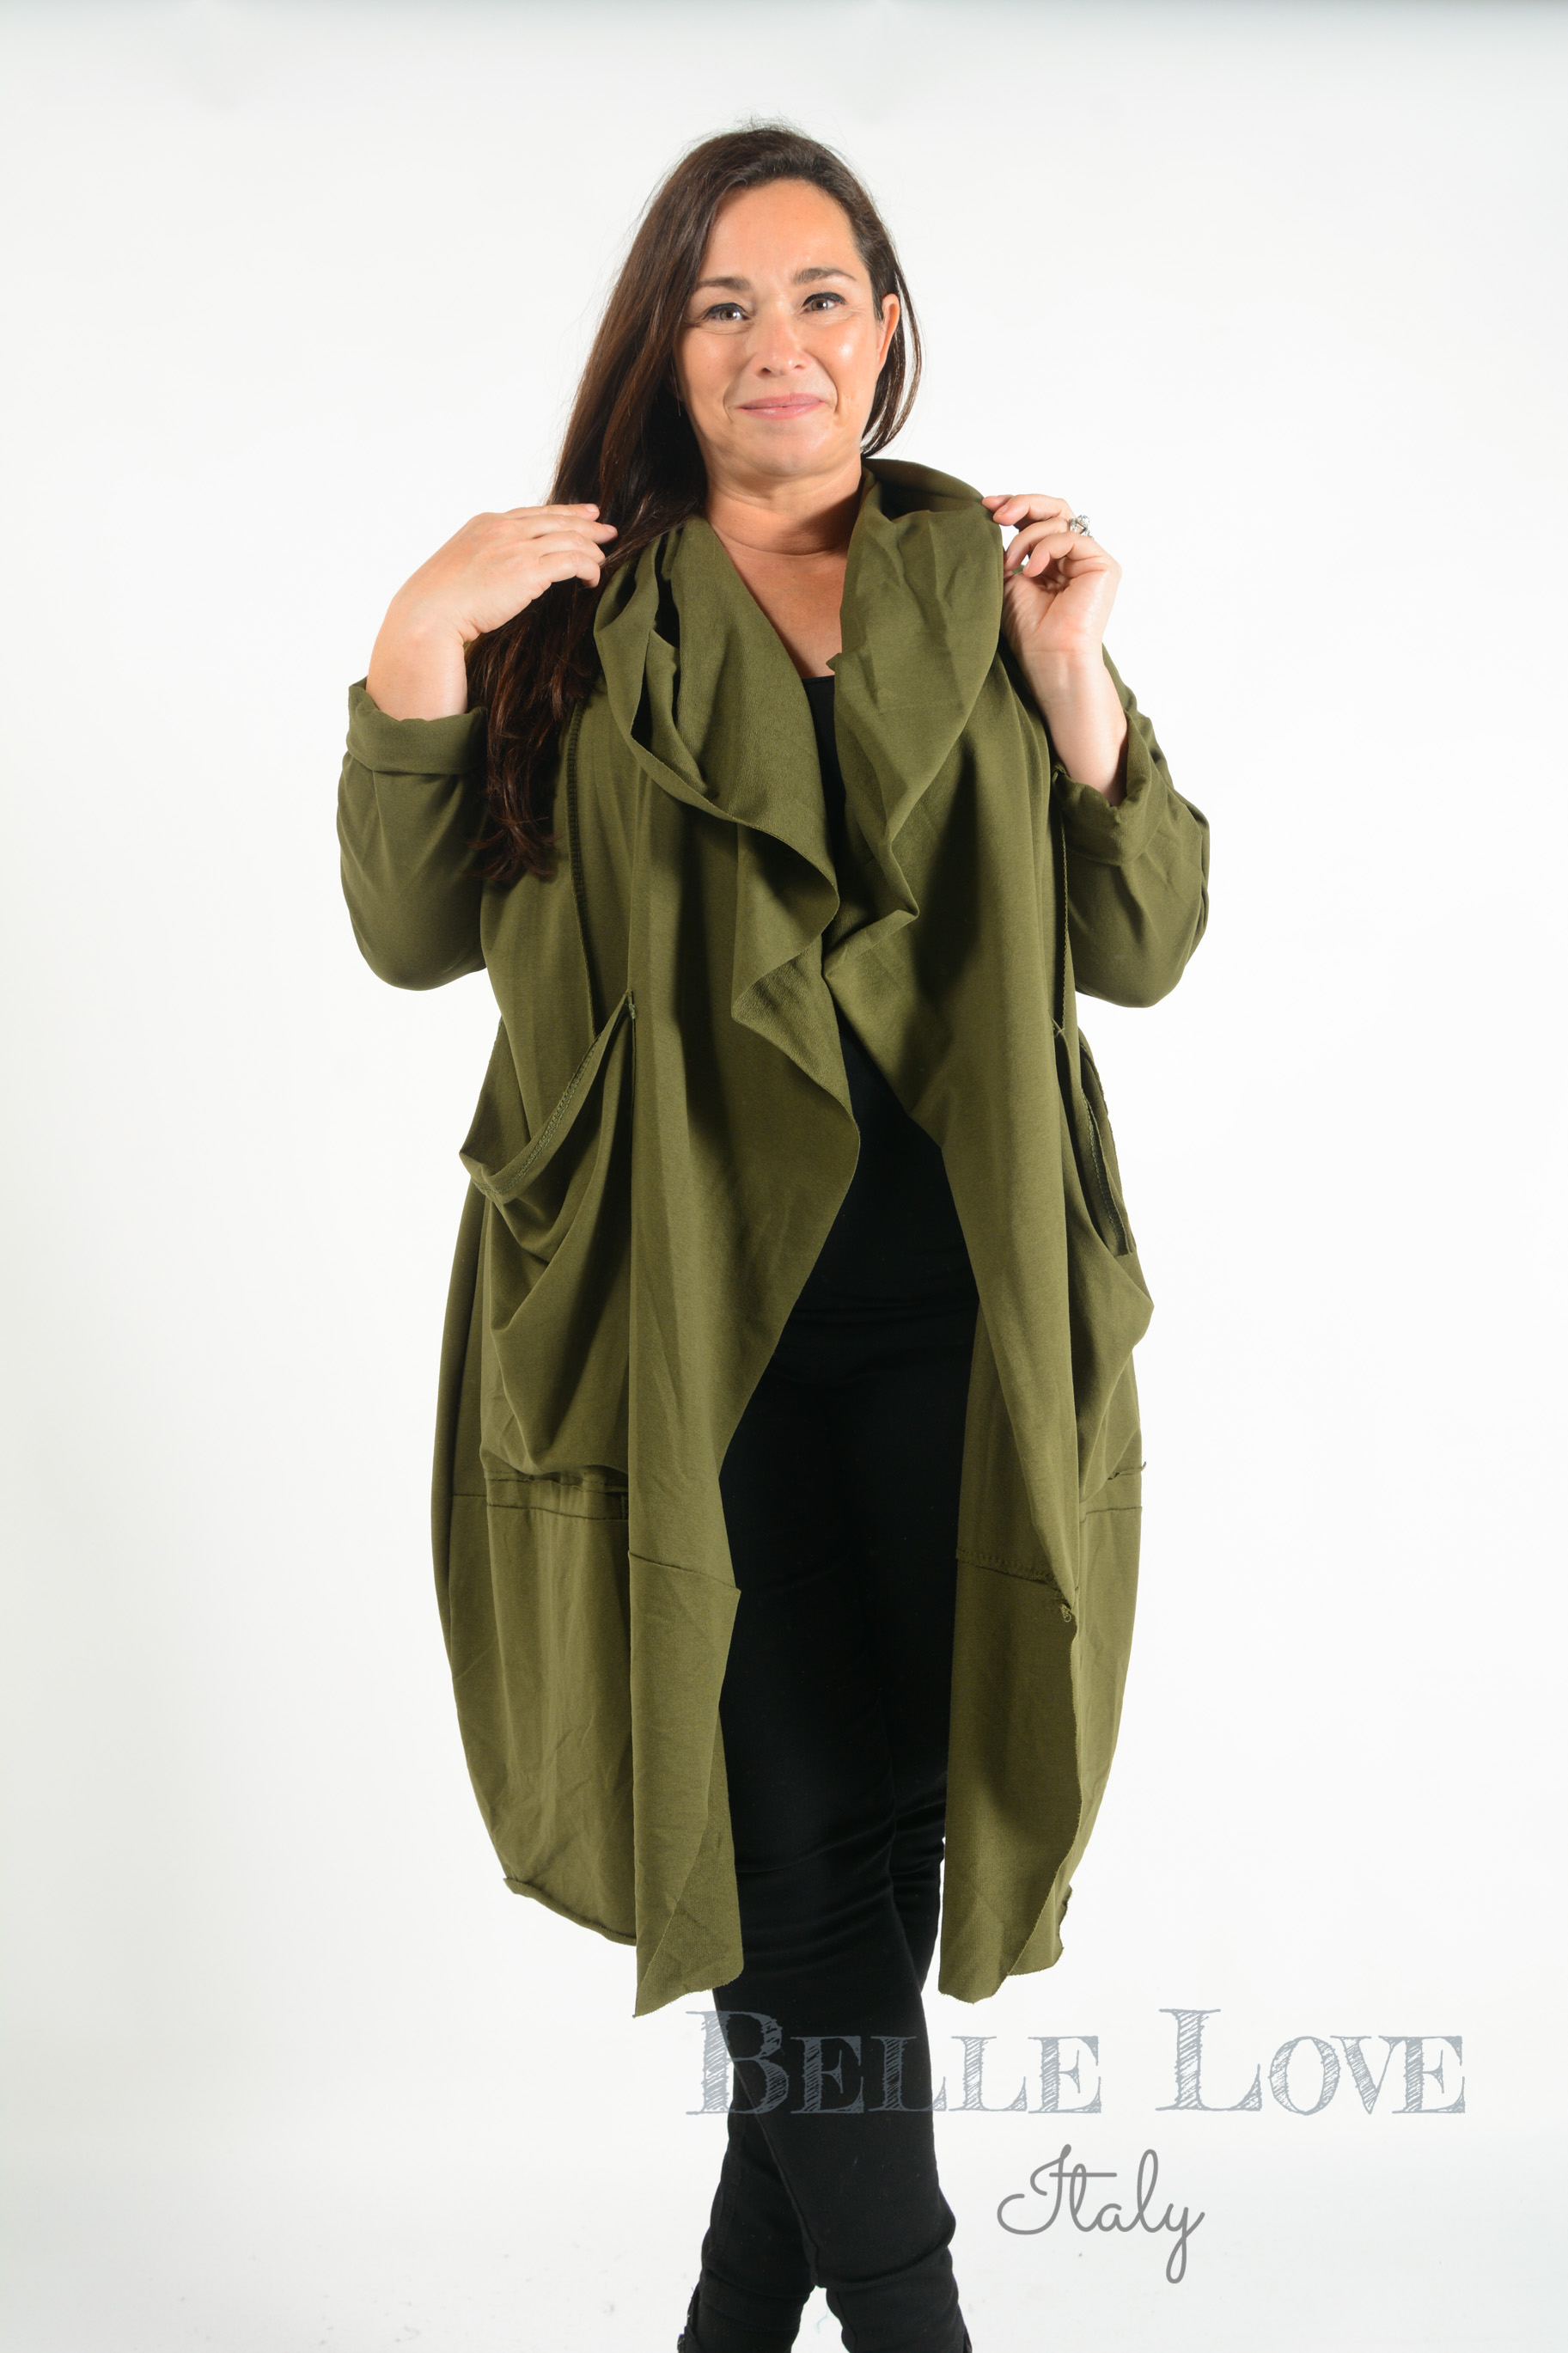 Belle Love Italy Evie Twist Lightweight Coat